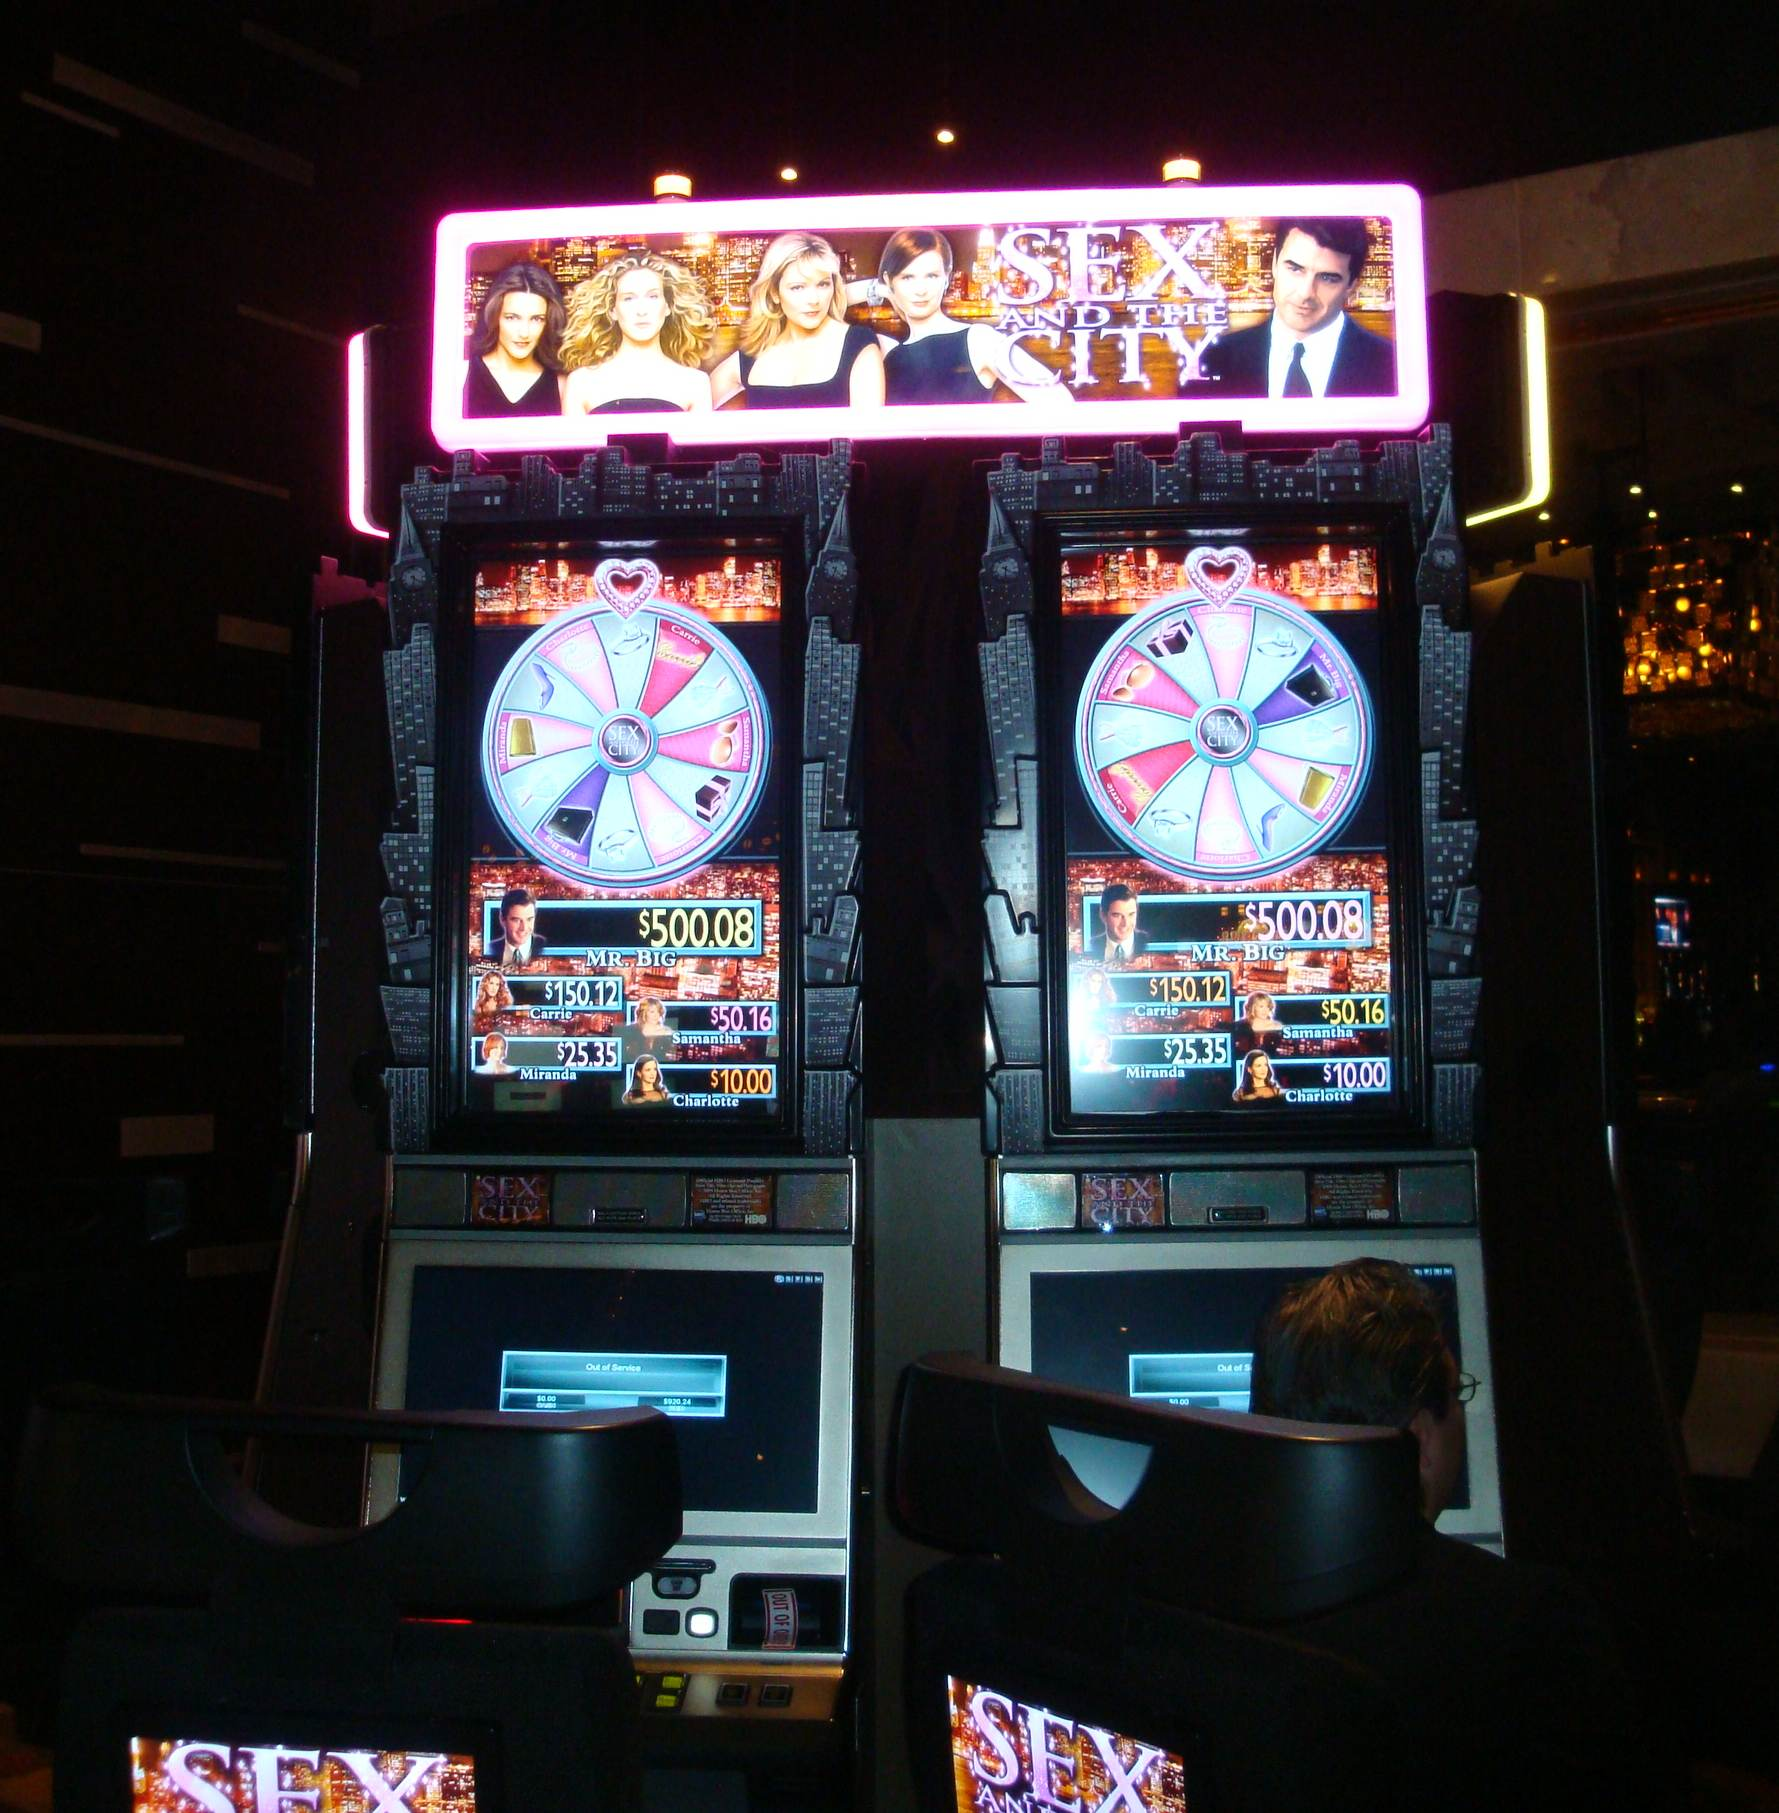 Sex and the city slot machines